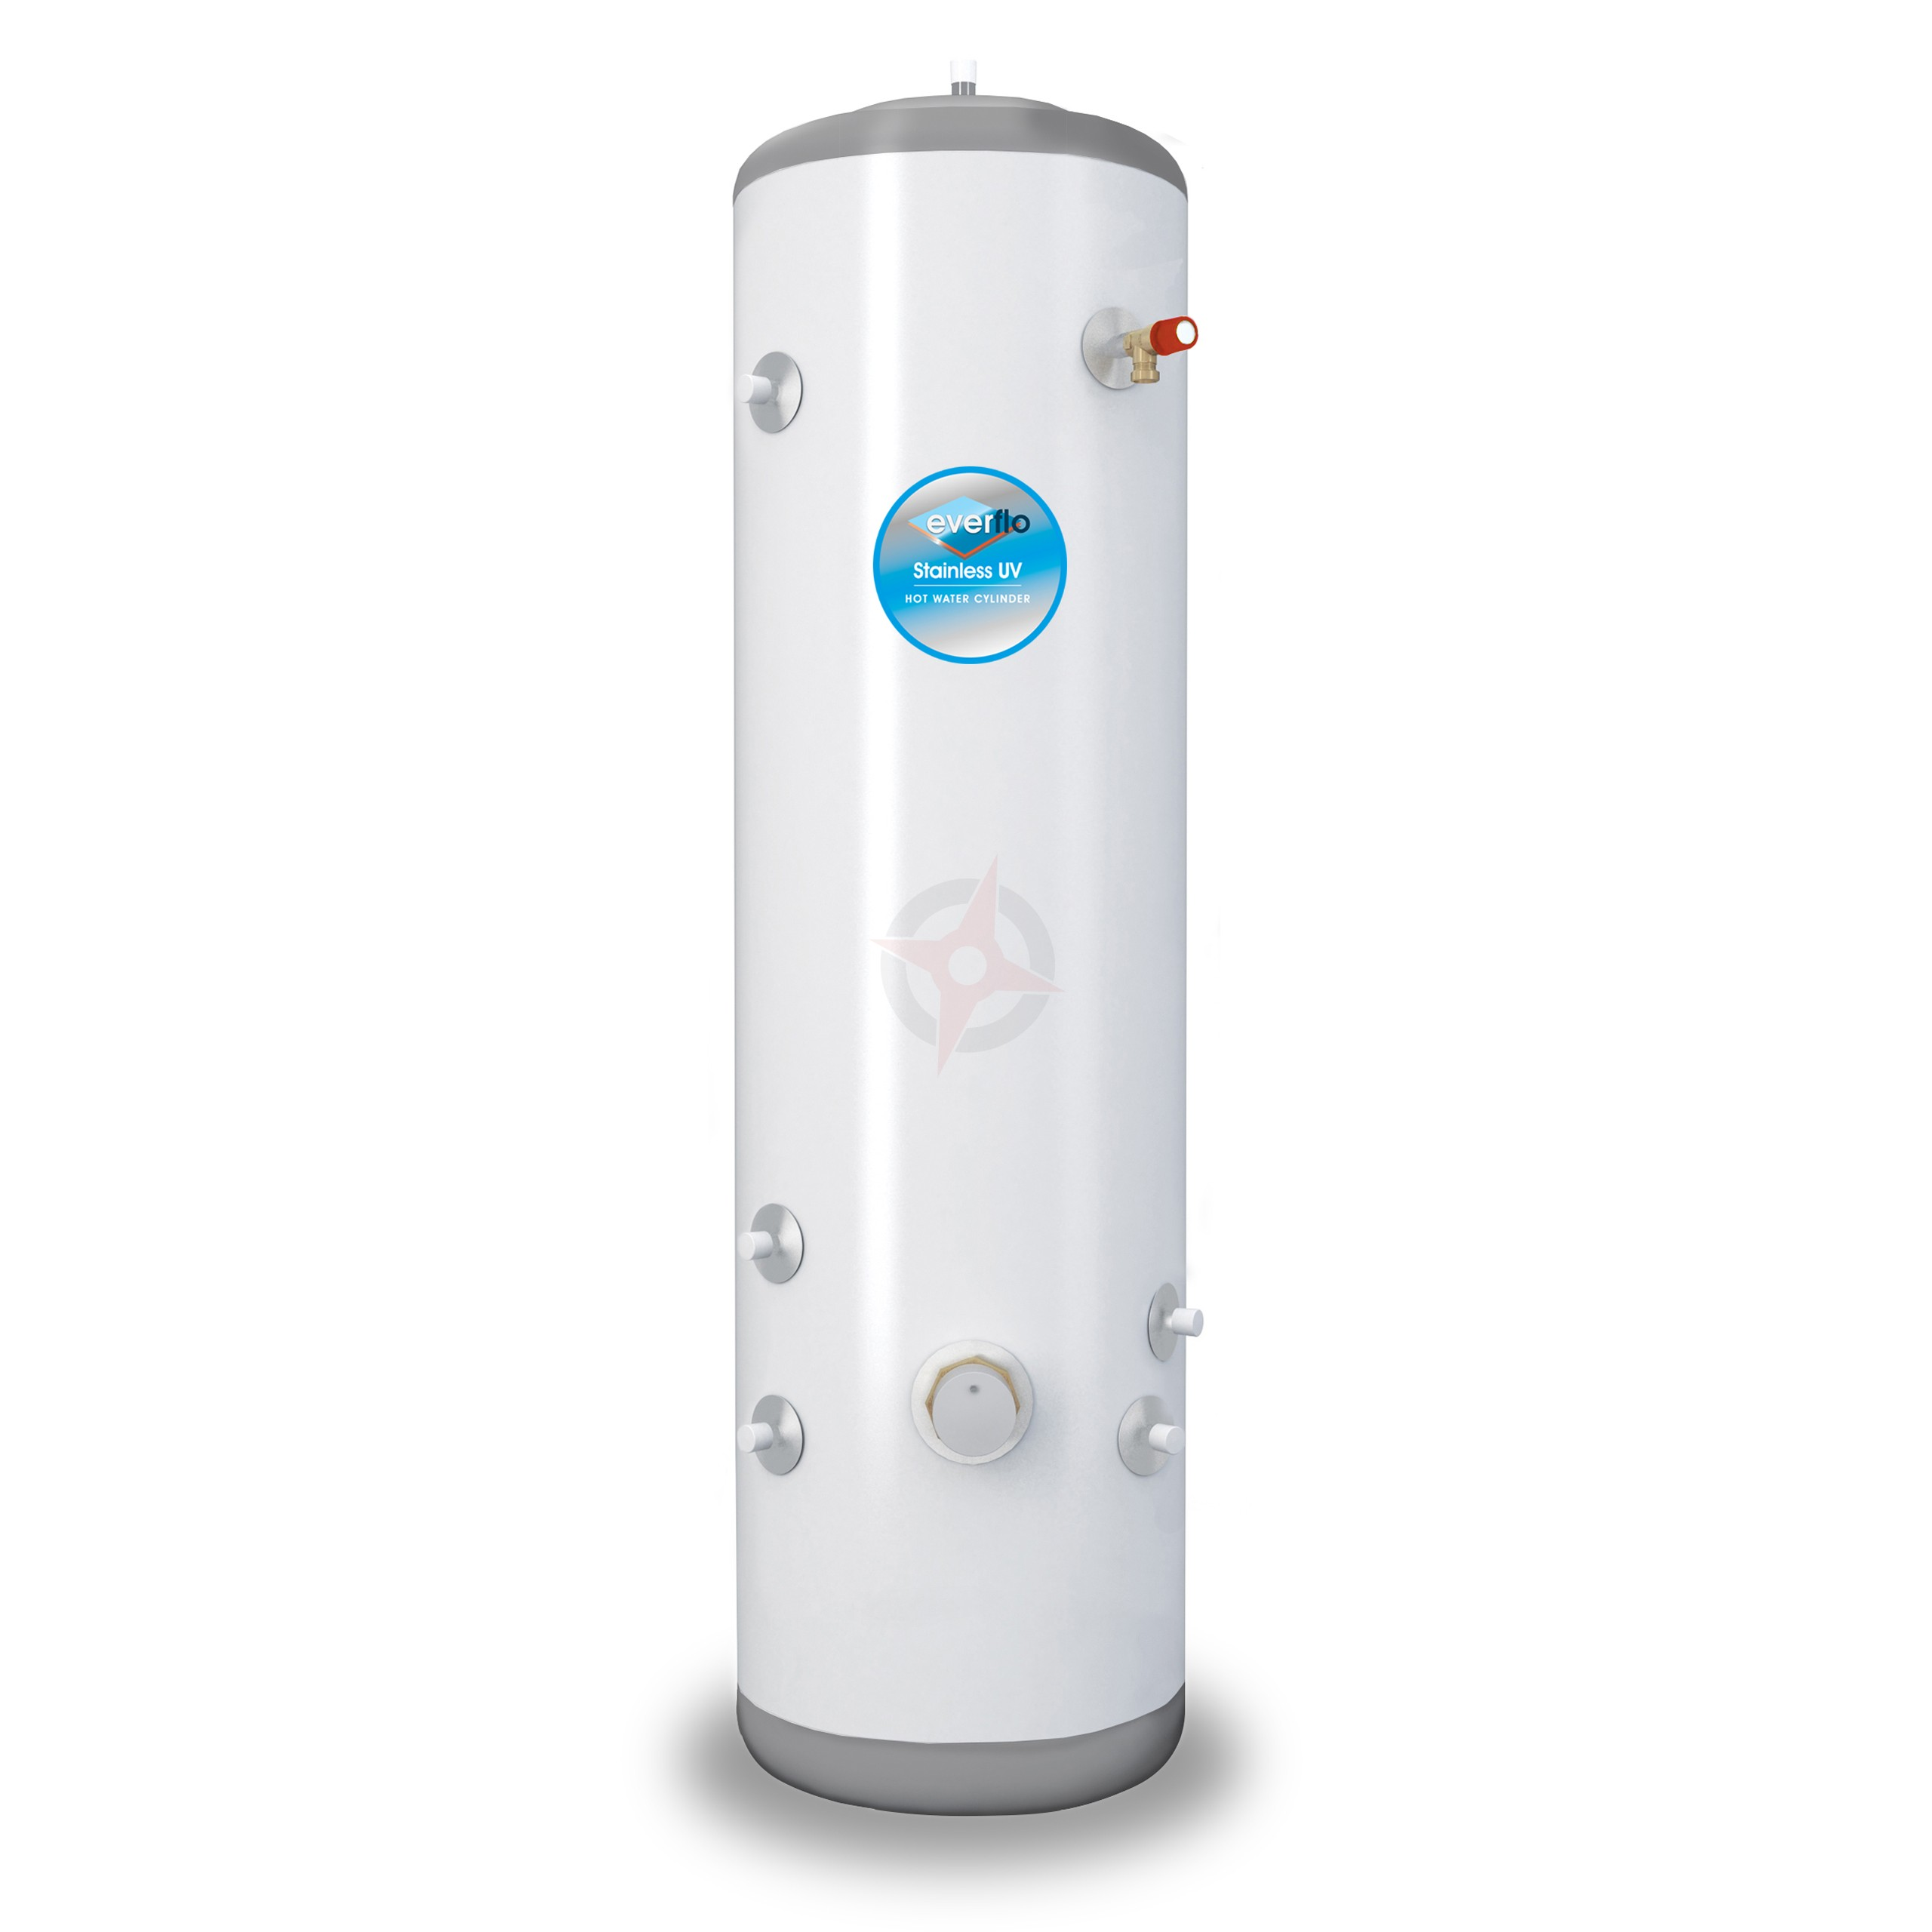 everflo Stainless 180L Slim-Fit Indirect Unvented Hot Water ...